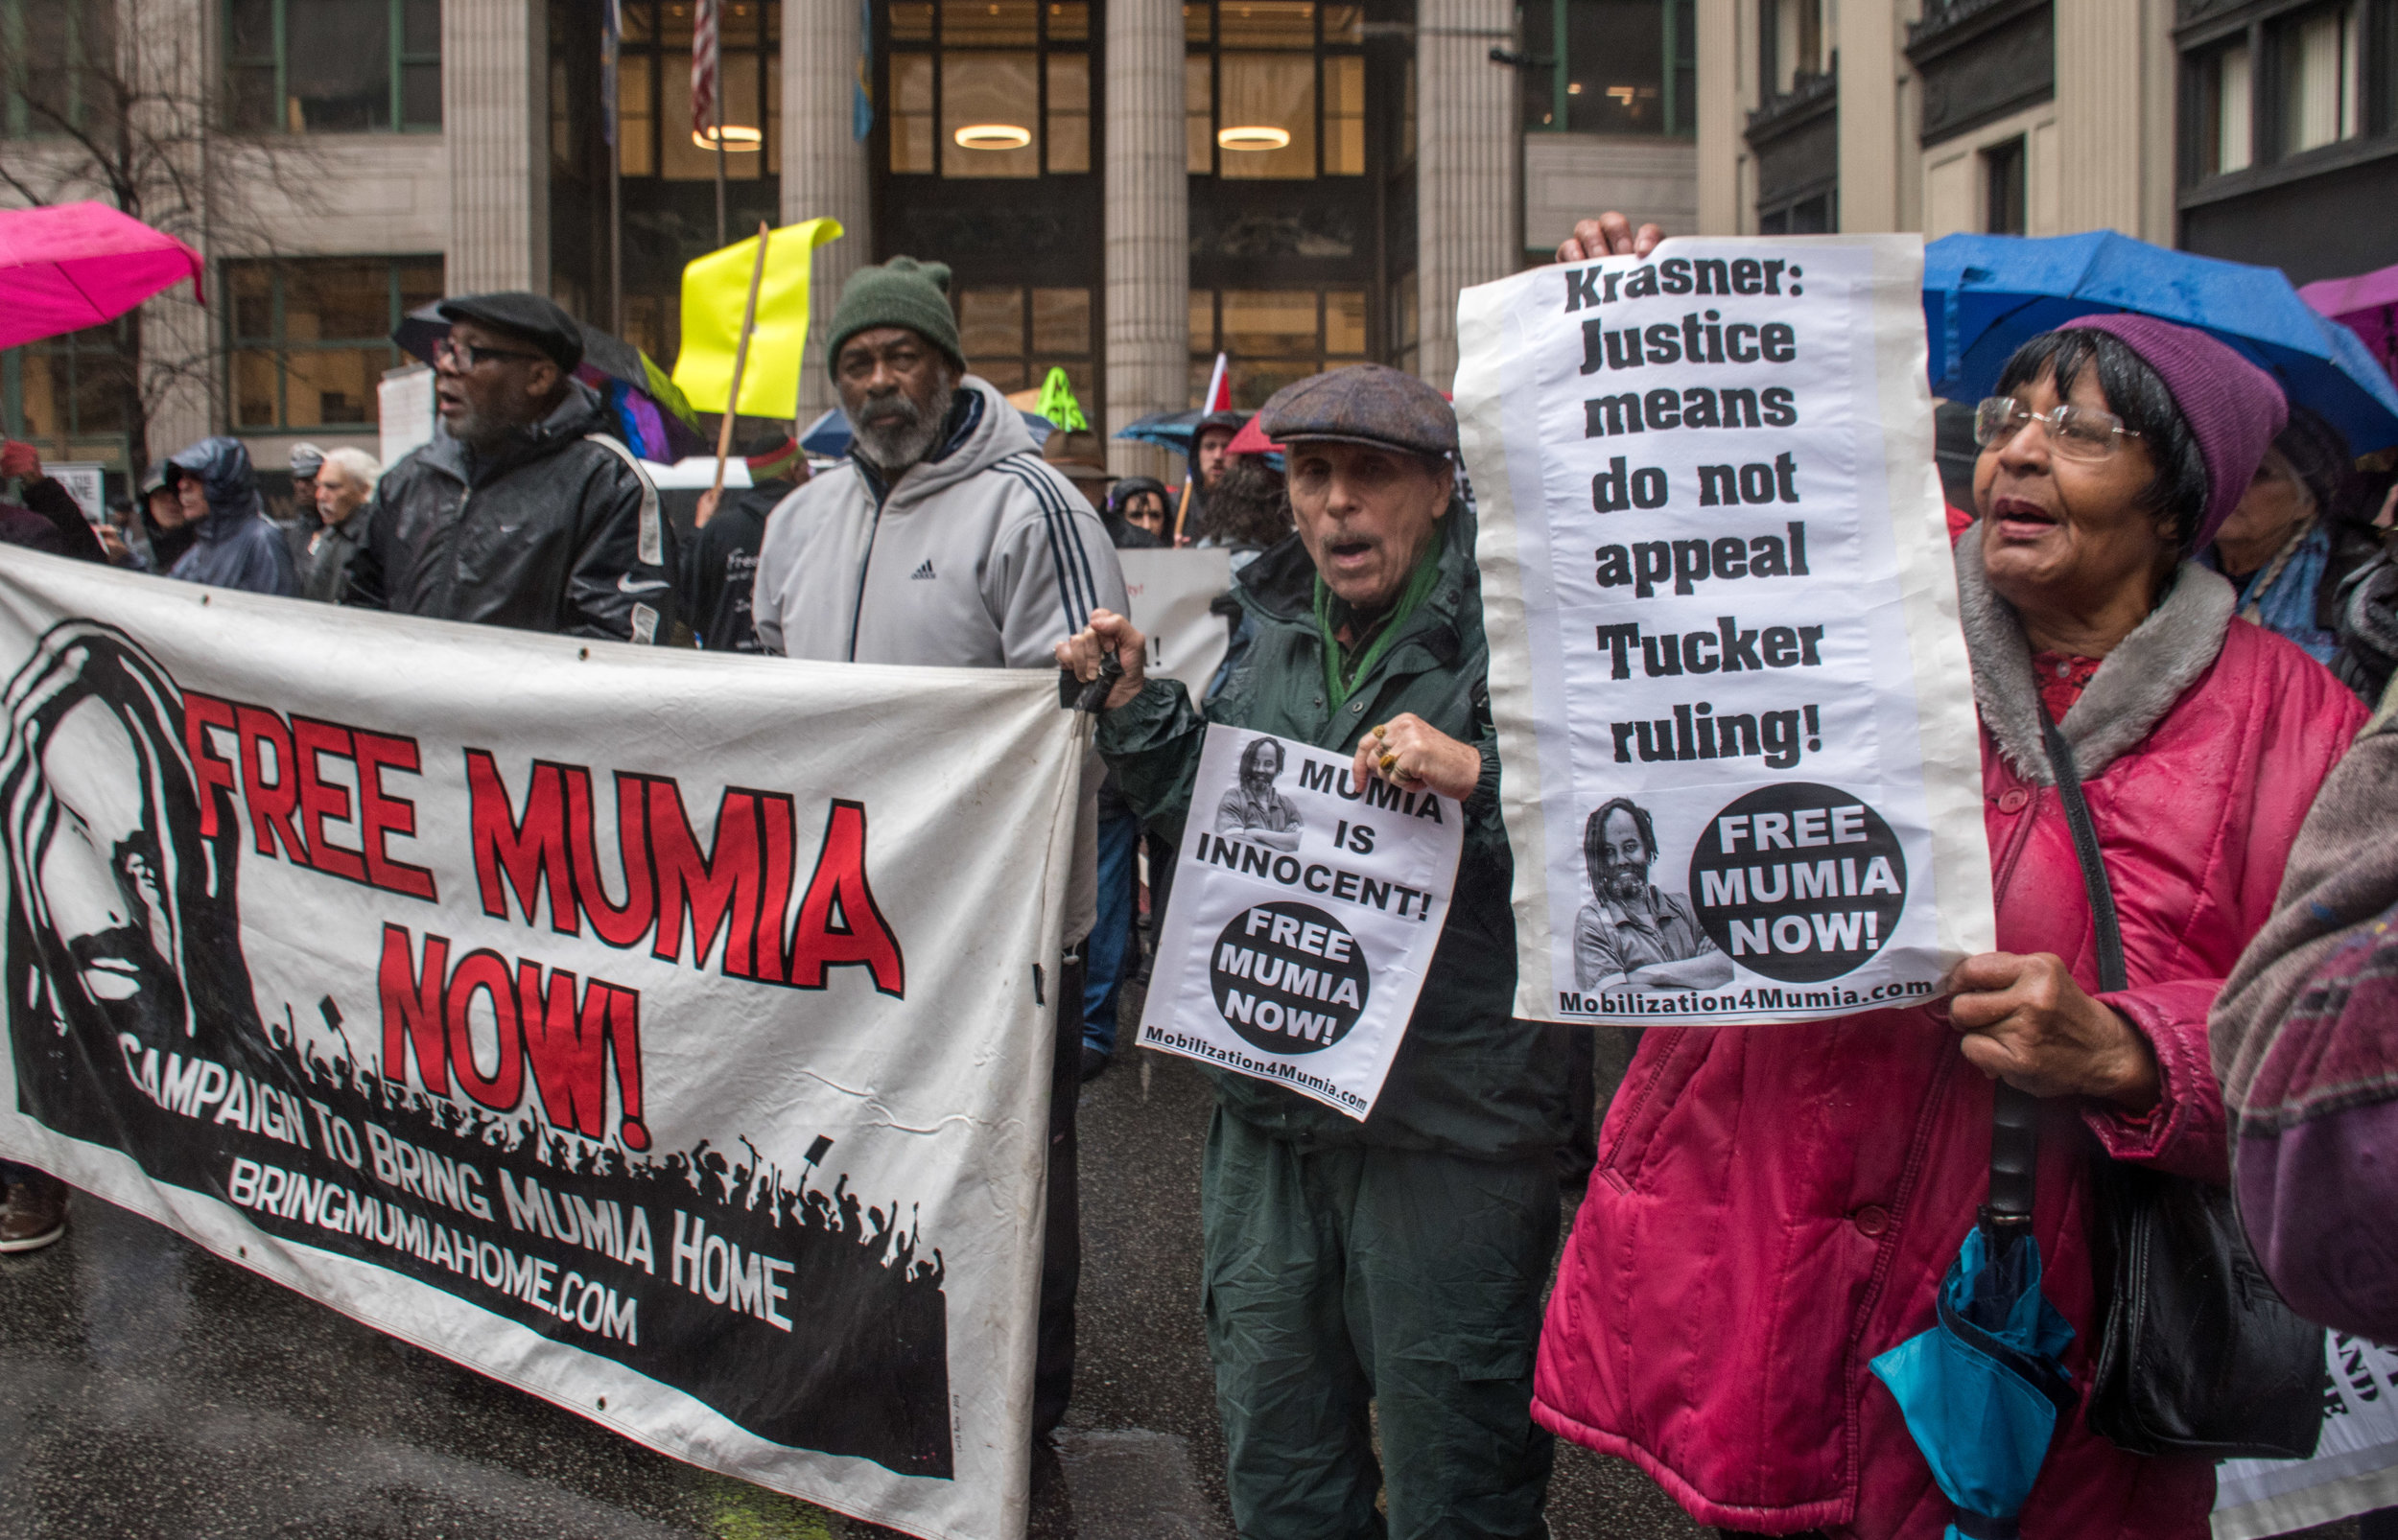 Jan 5 Peoples Constitutional Protest Party for Mumia's Freedom